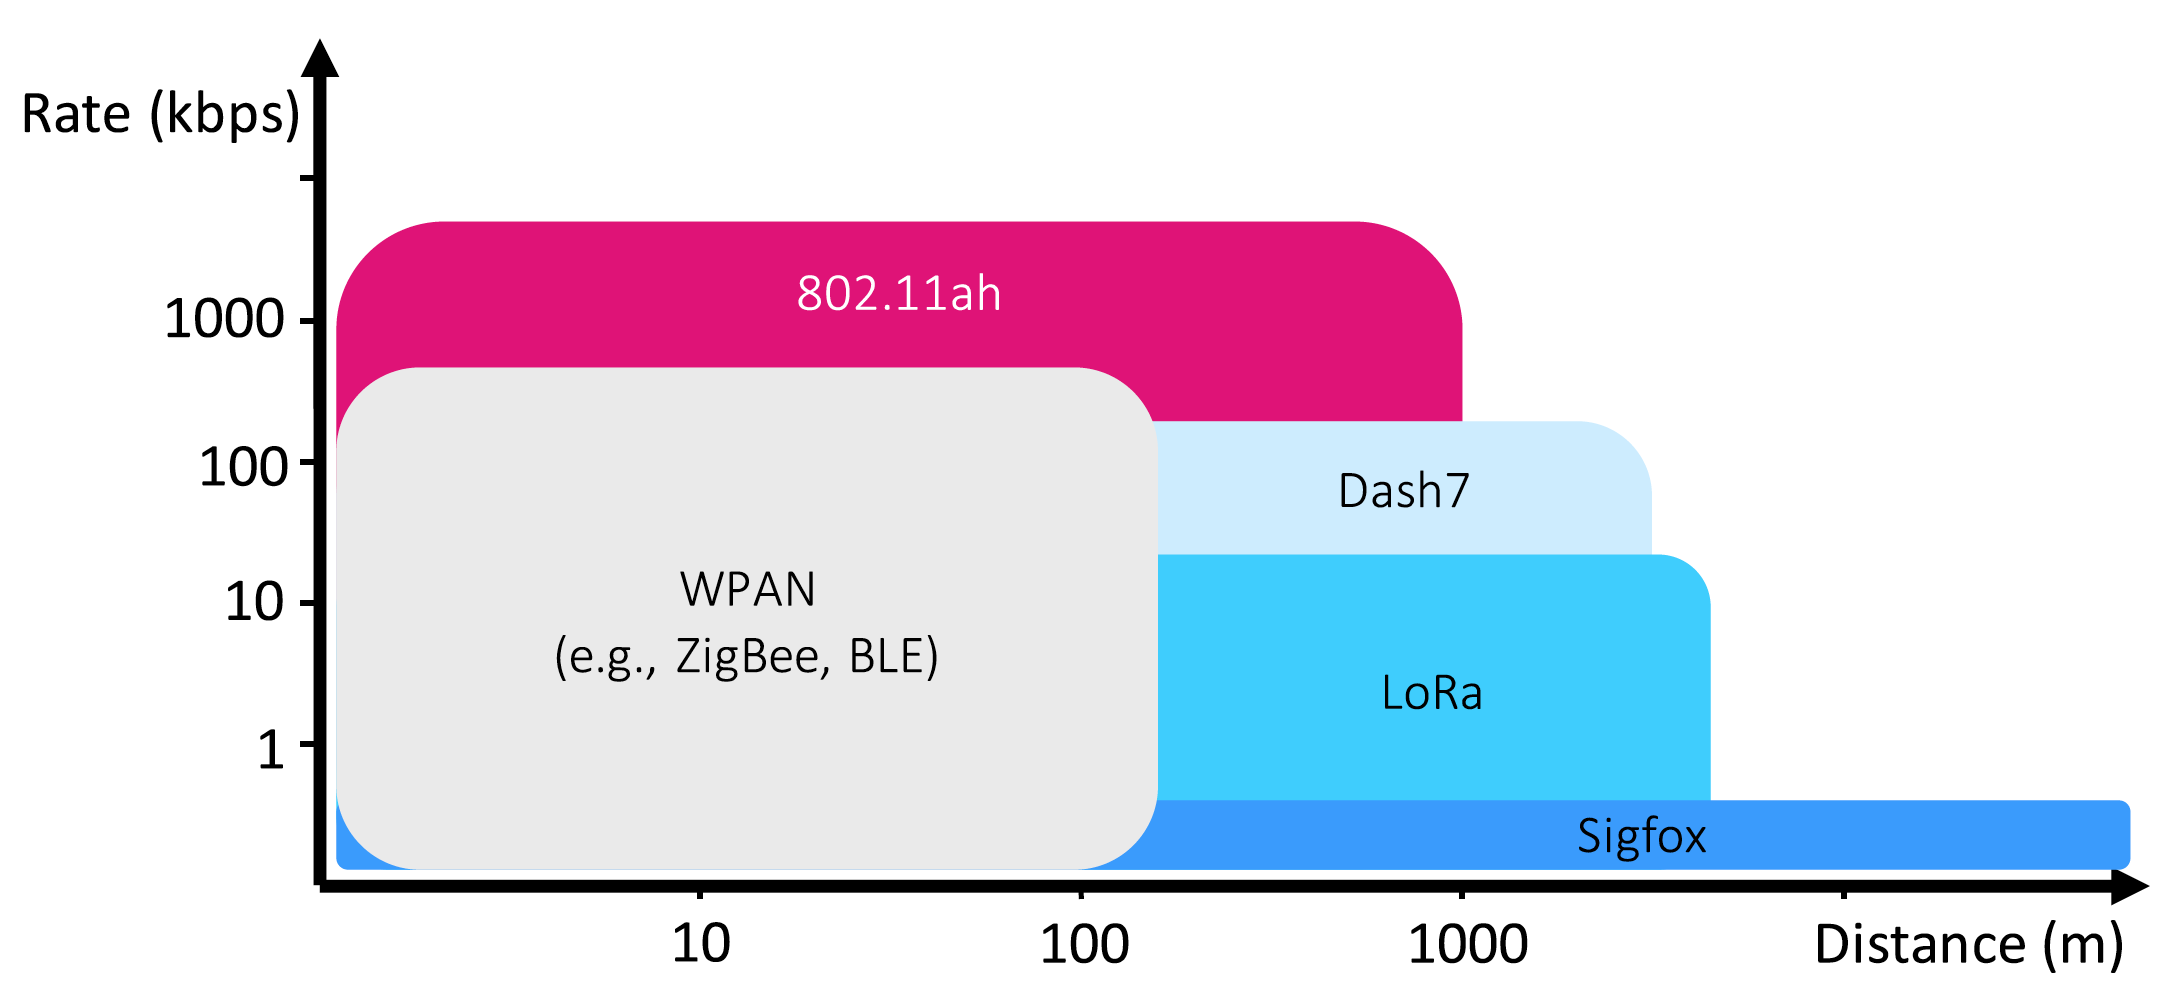 Overview of wireless technologies